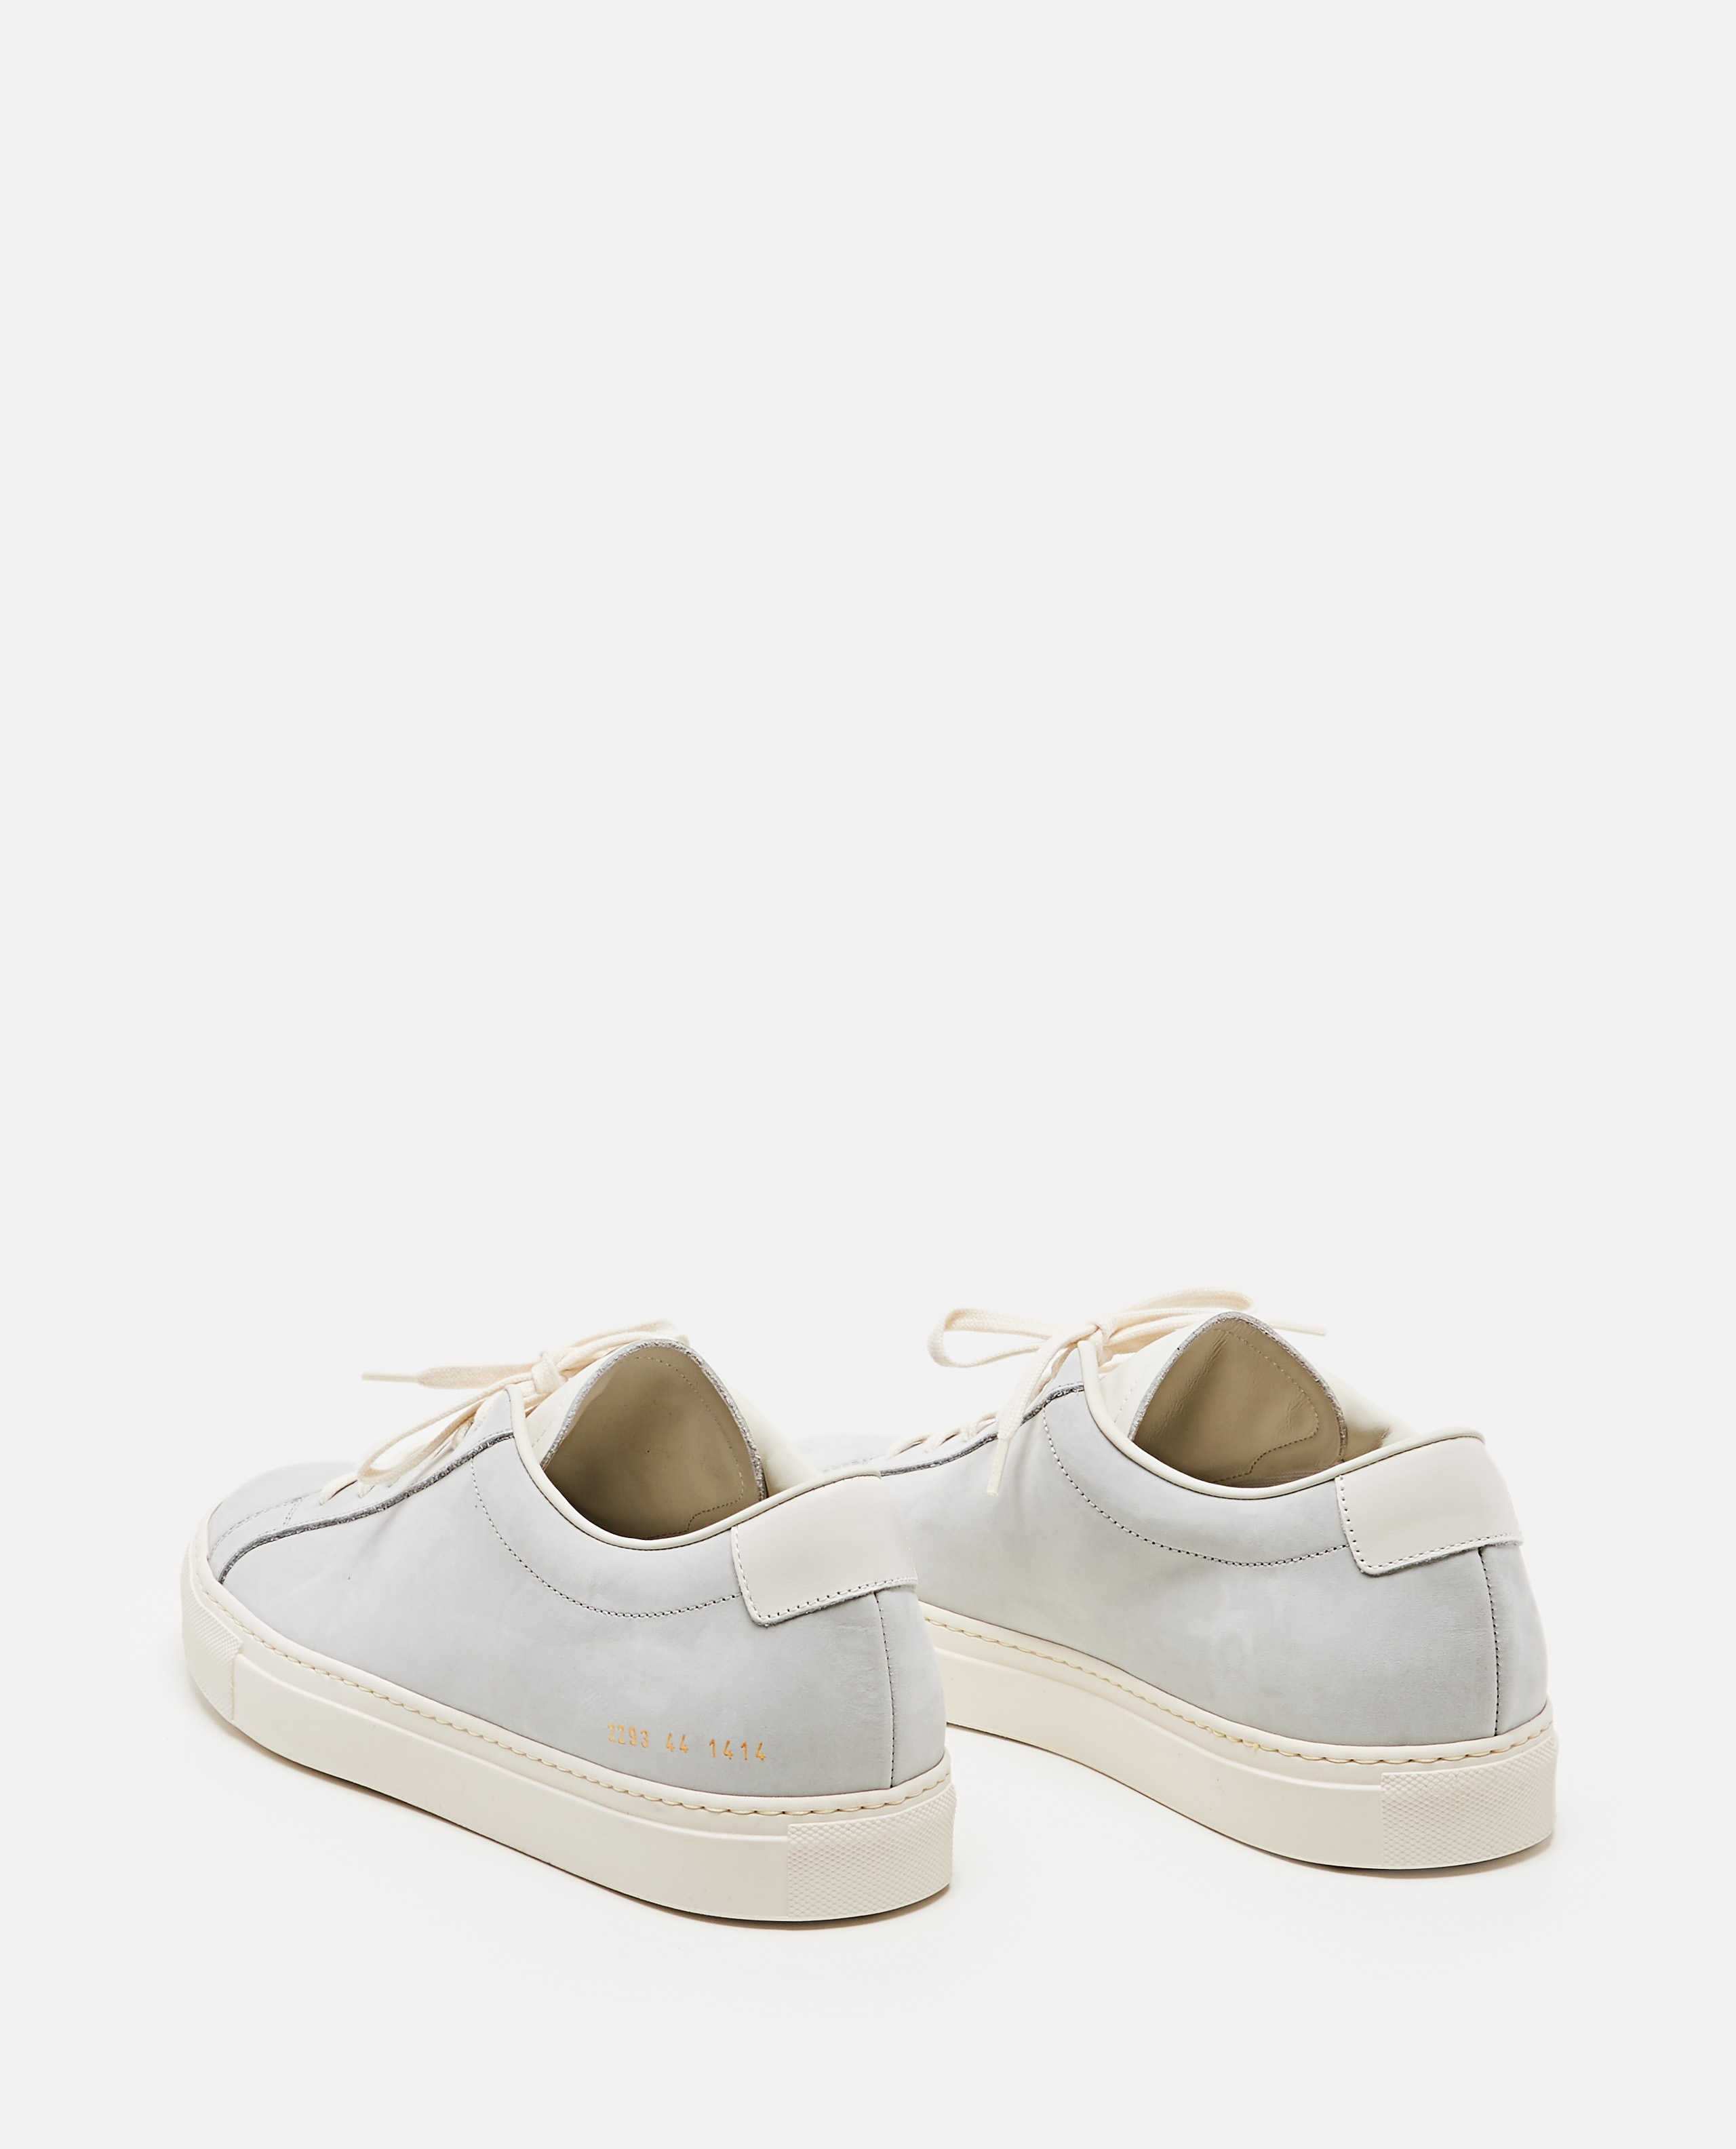 Sneakers Achilles Low in pelle nabuk Uomo Common Projects 000305520044800 3